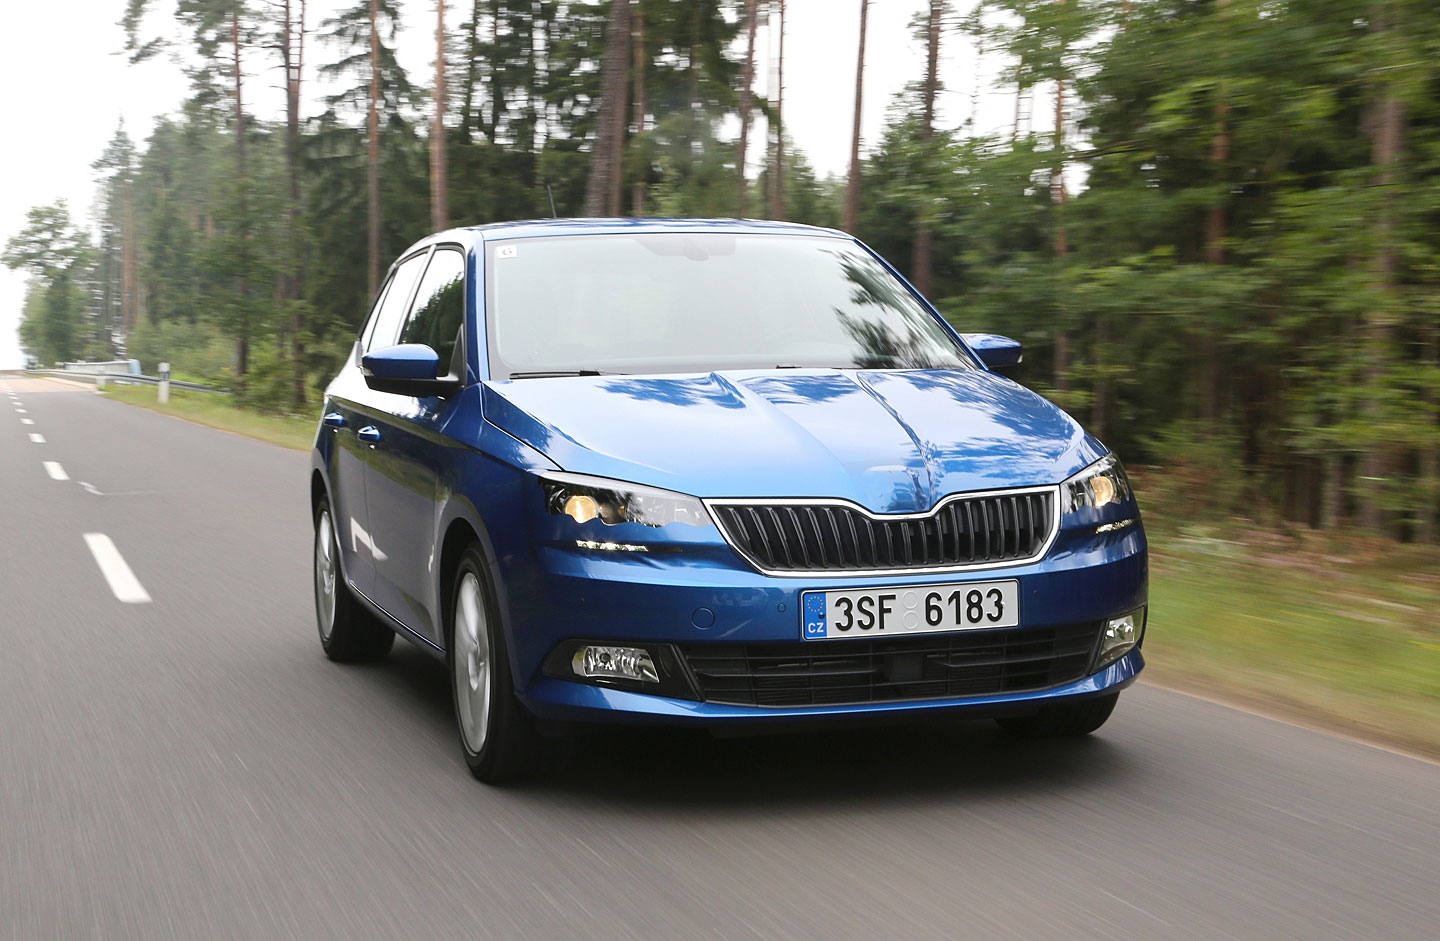 2018 skoda fabia super 2018 car photos catalog 2018